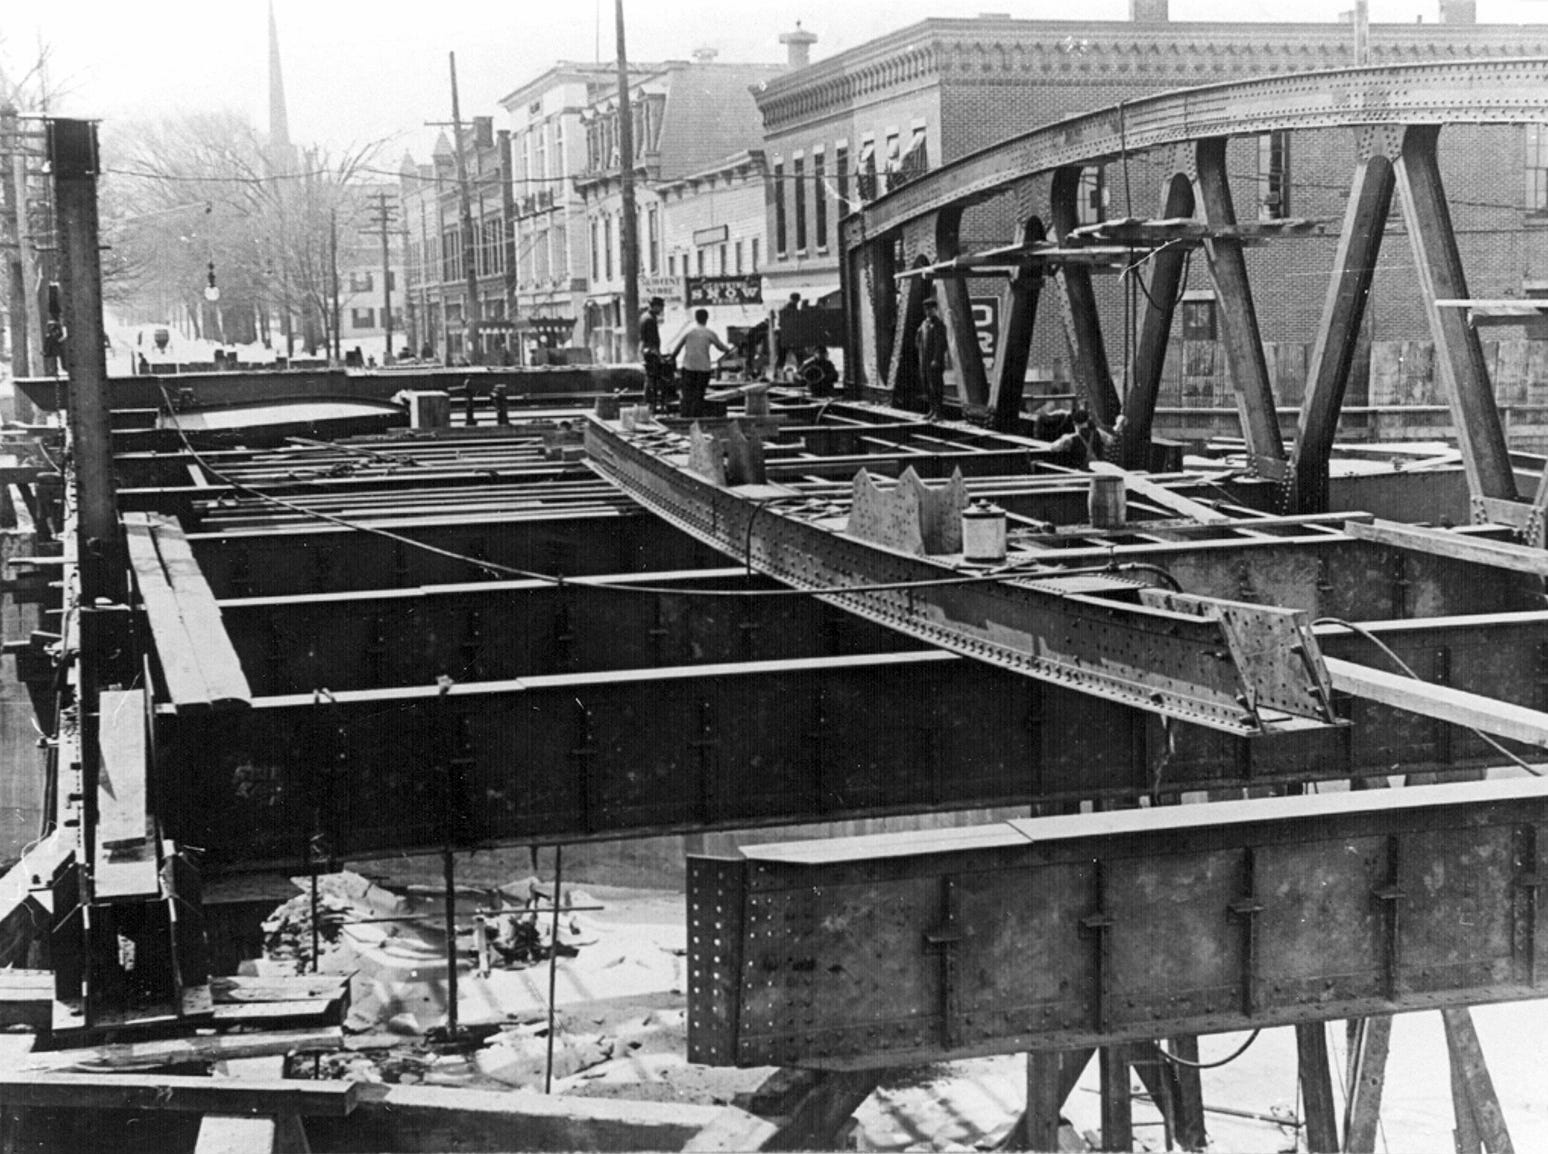 Construction work continues on the Fairport lift bridge over the Erie Canal in this 1914 photo.